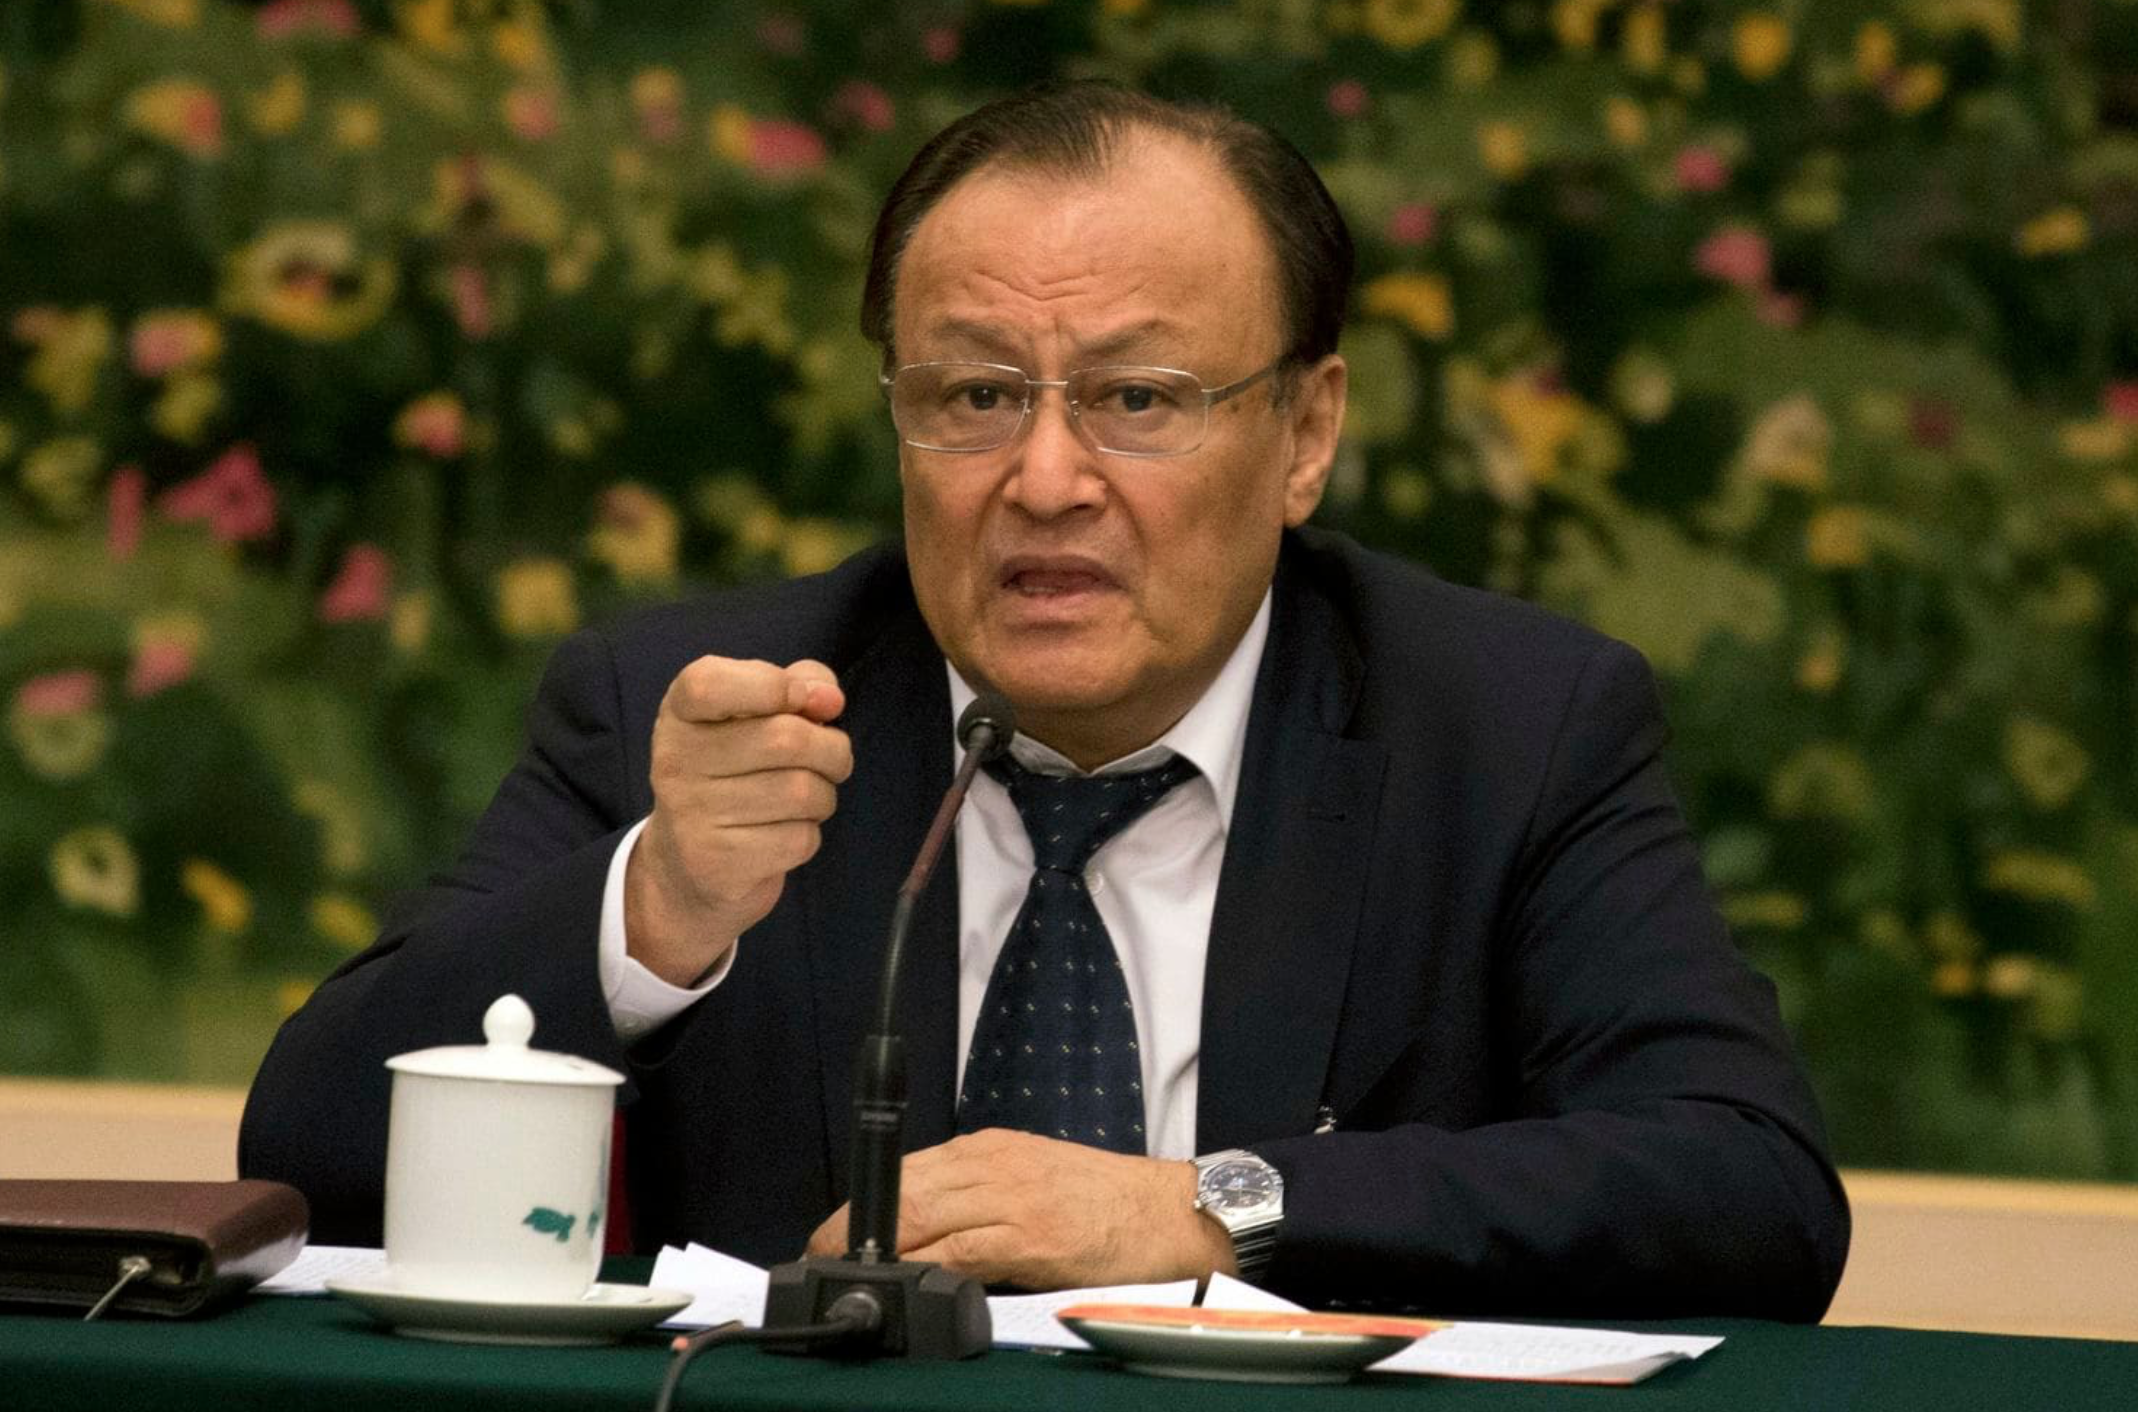 China defends its 'people-oriented' Muslim reeducation program as job training